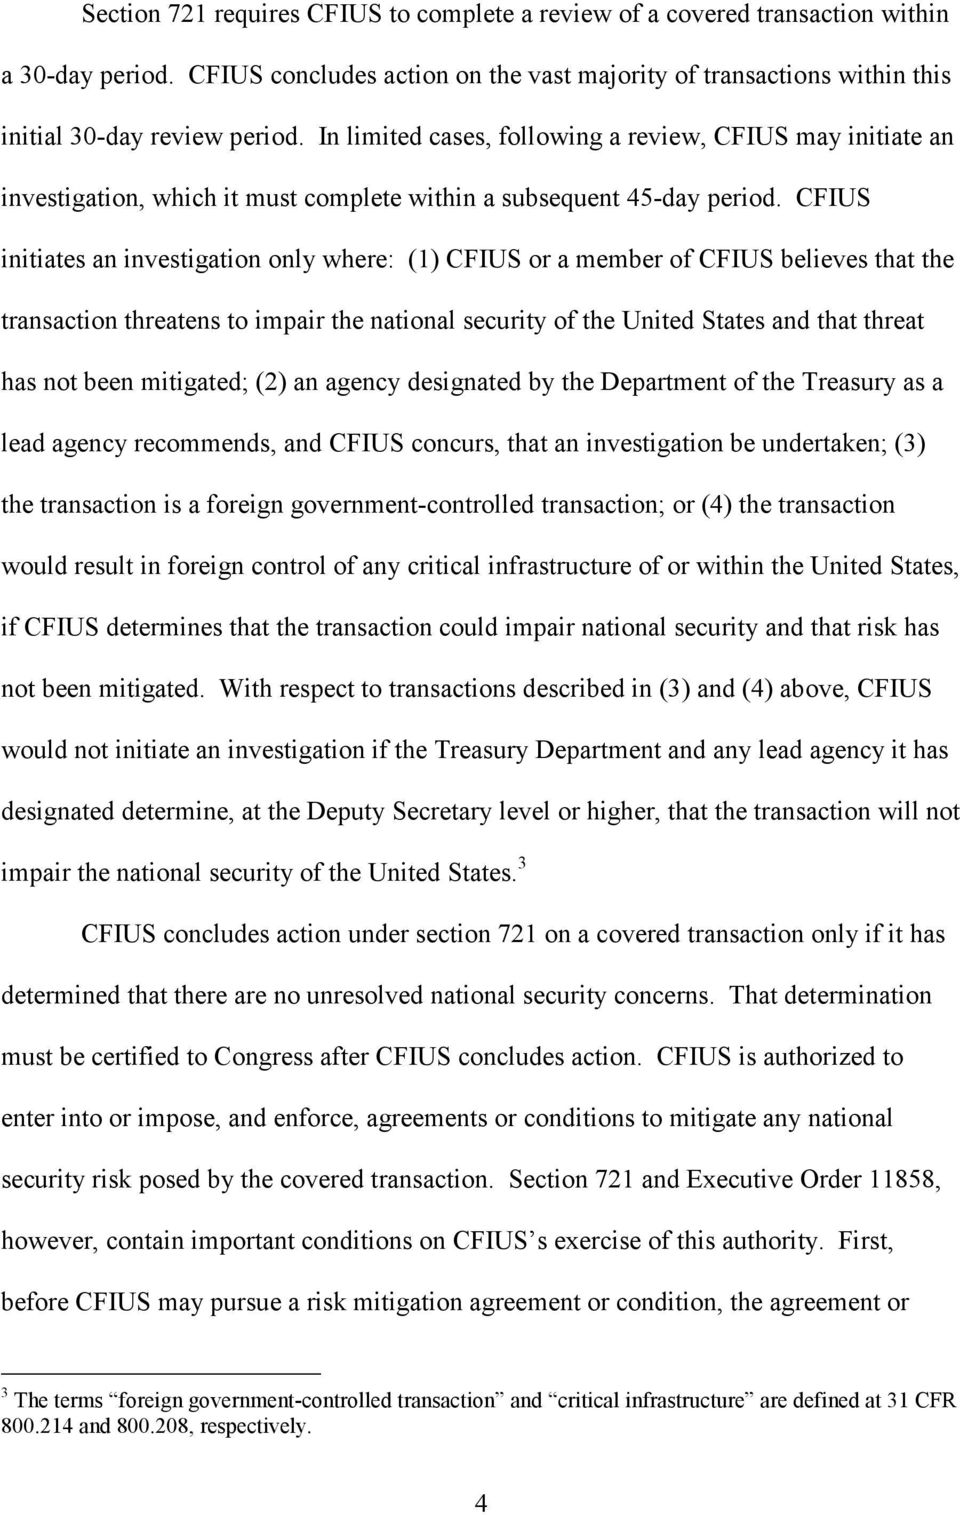 CFIUS initiates an investigation only where: (1) CFIUS or a member of CFIUS believes that the transaction threatens to impair the national security of the United States and that threat has not been